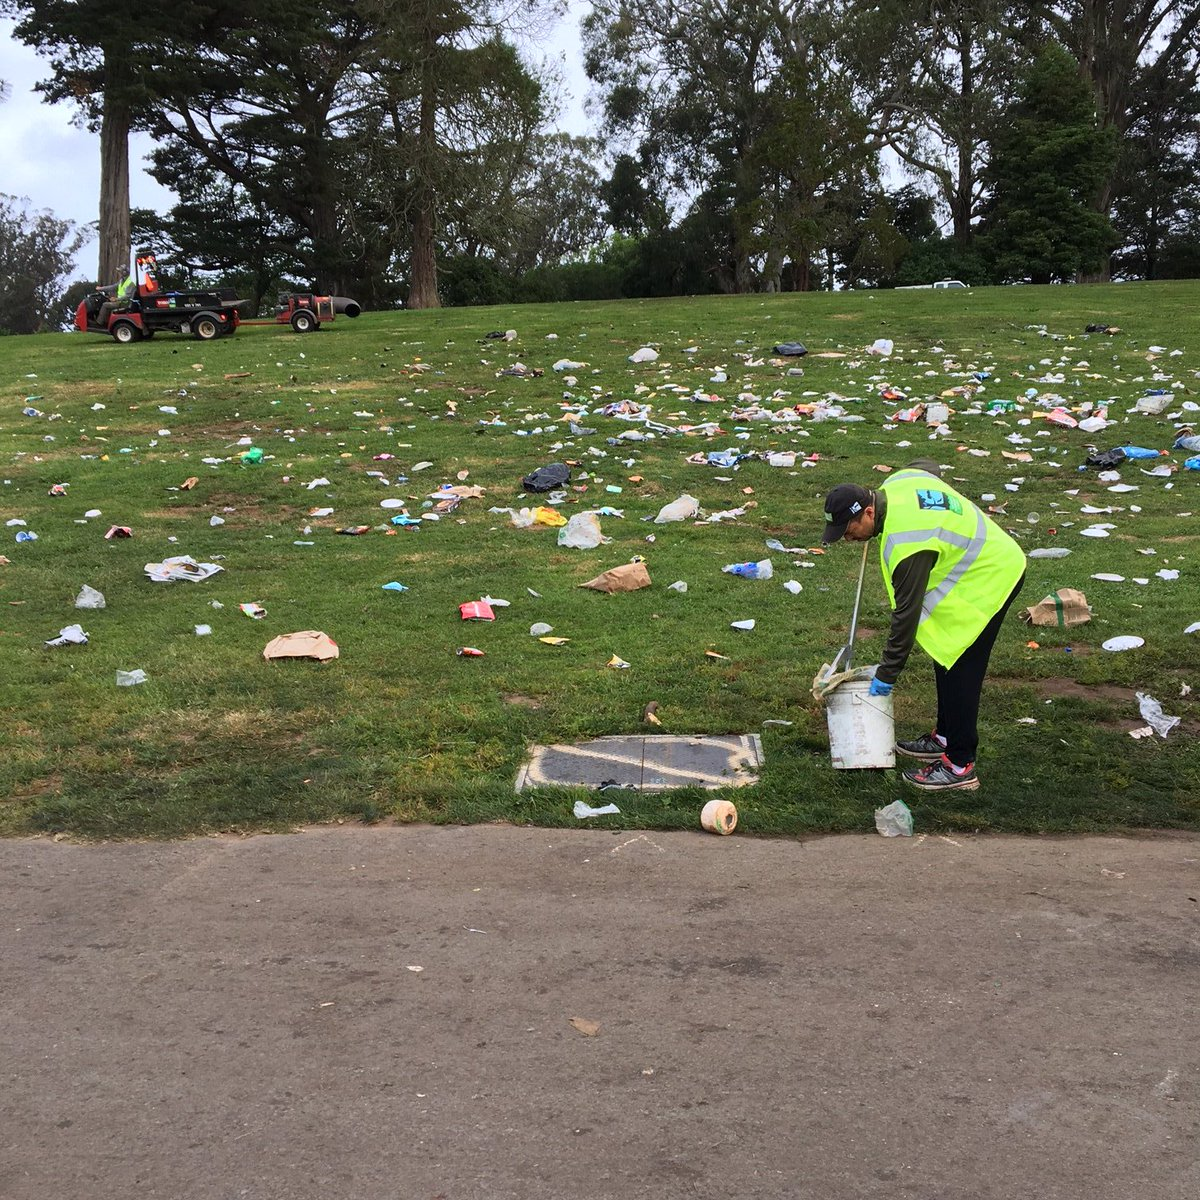 Park Hangover: GGP crews and GM Phil Ginsburg picking up after 4/20. Huge impact on our park & city services. https://t.co/xLfB0E62C2